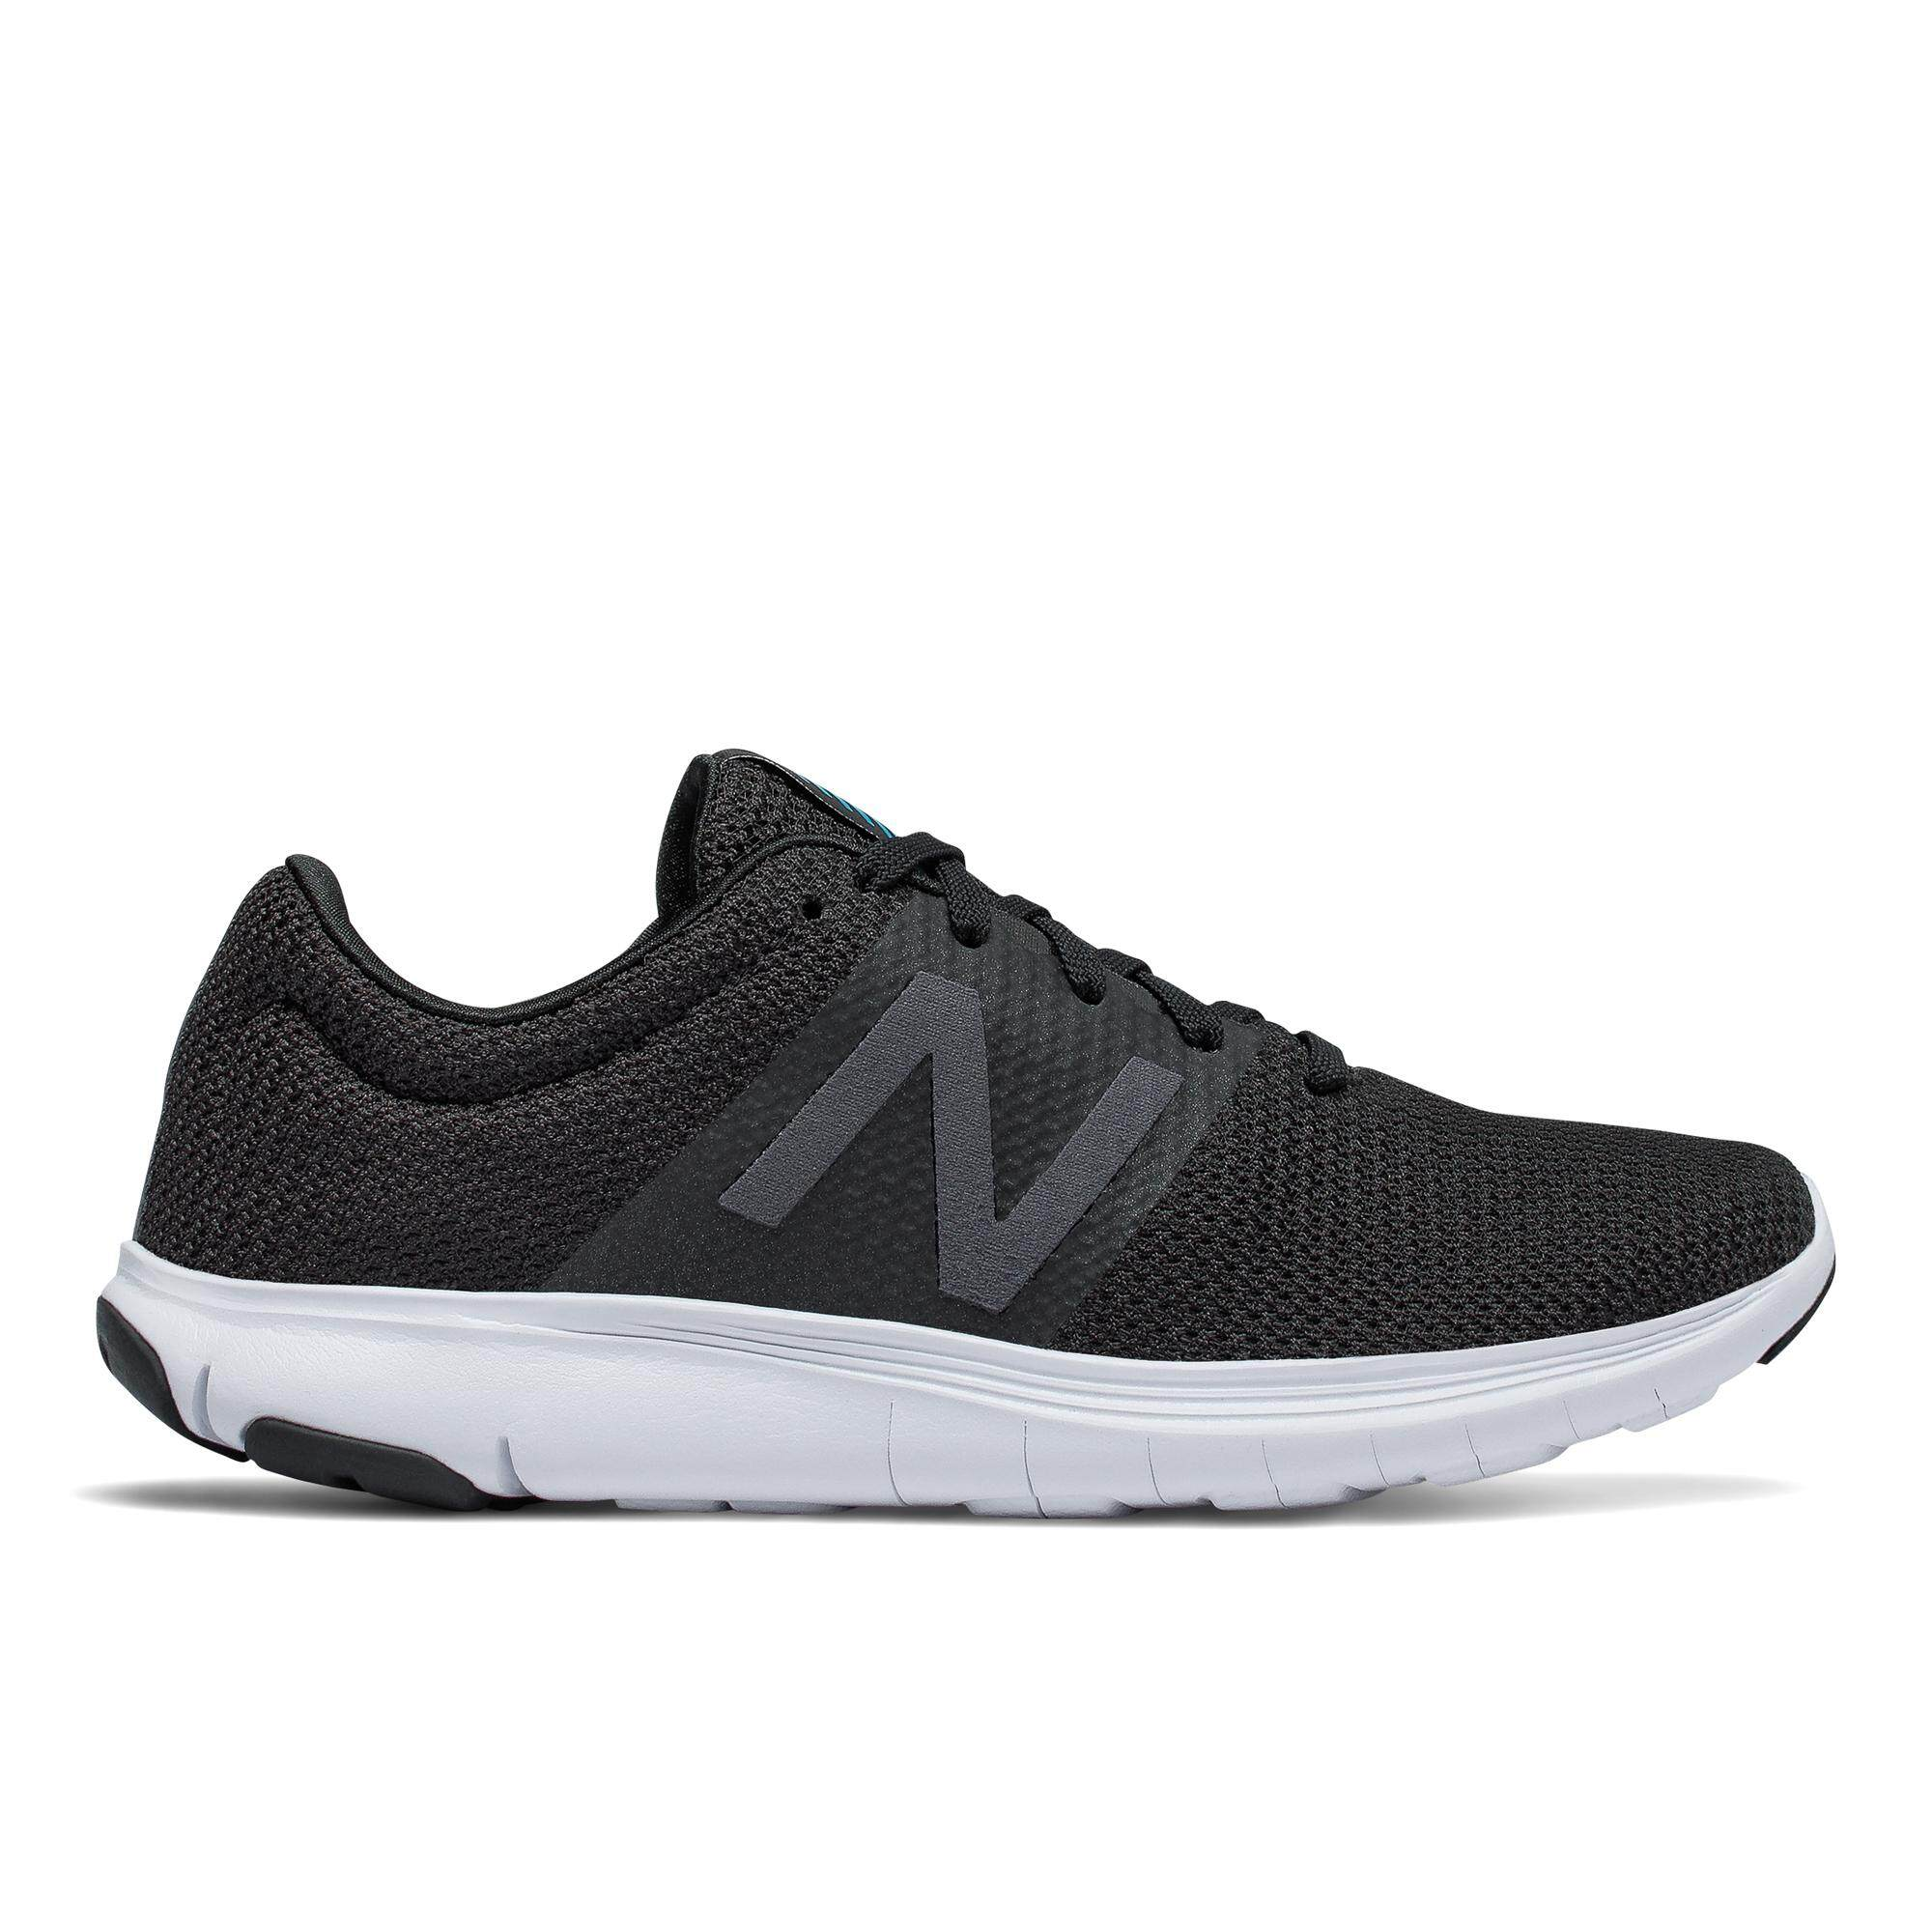 529635bdbee New Balance Official Store - Buy New Balance Official Store at Best ...